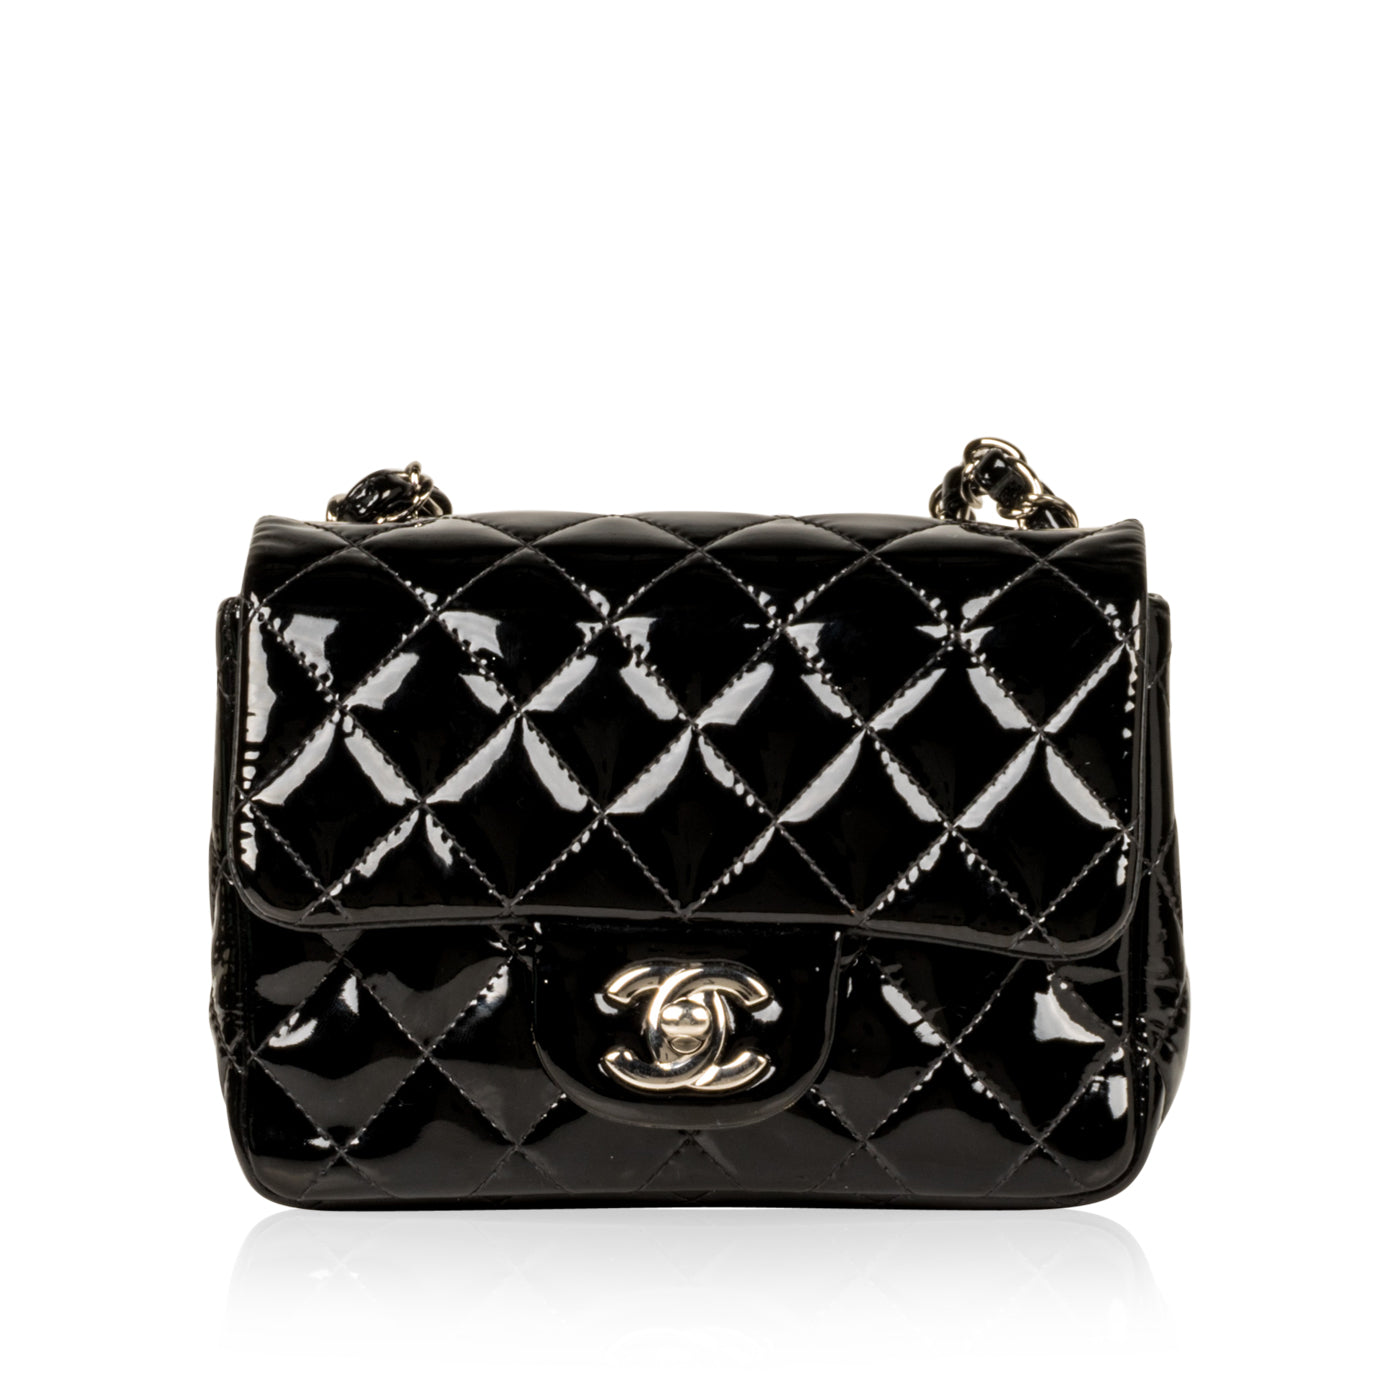 0110eafae8150b Chanel - Mini Square Classic Flap Bag - Black Patent - SHW | Bagista